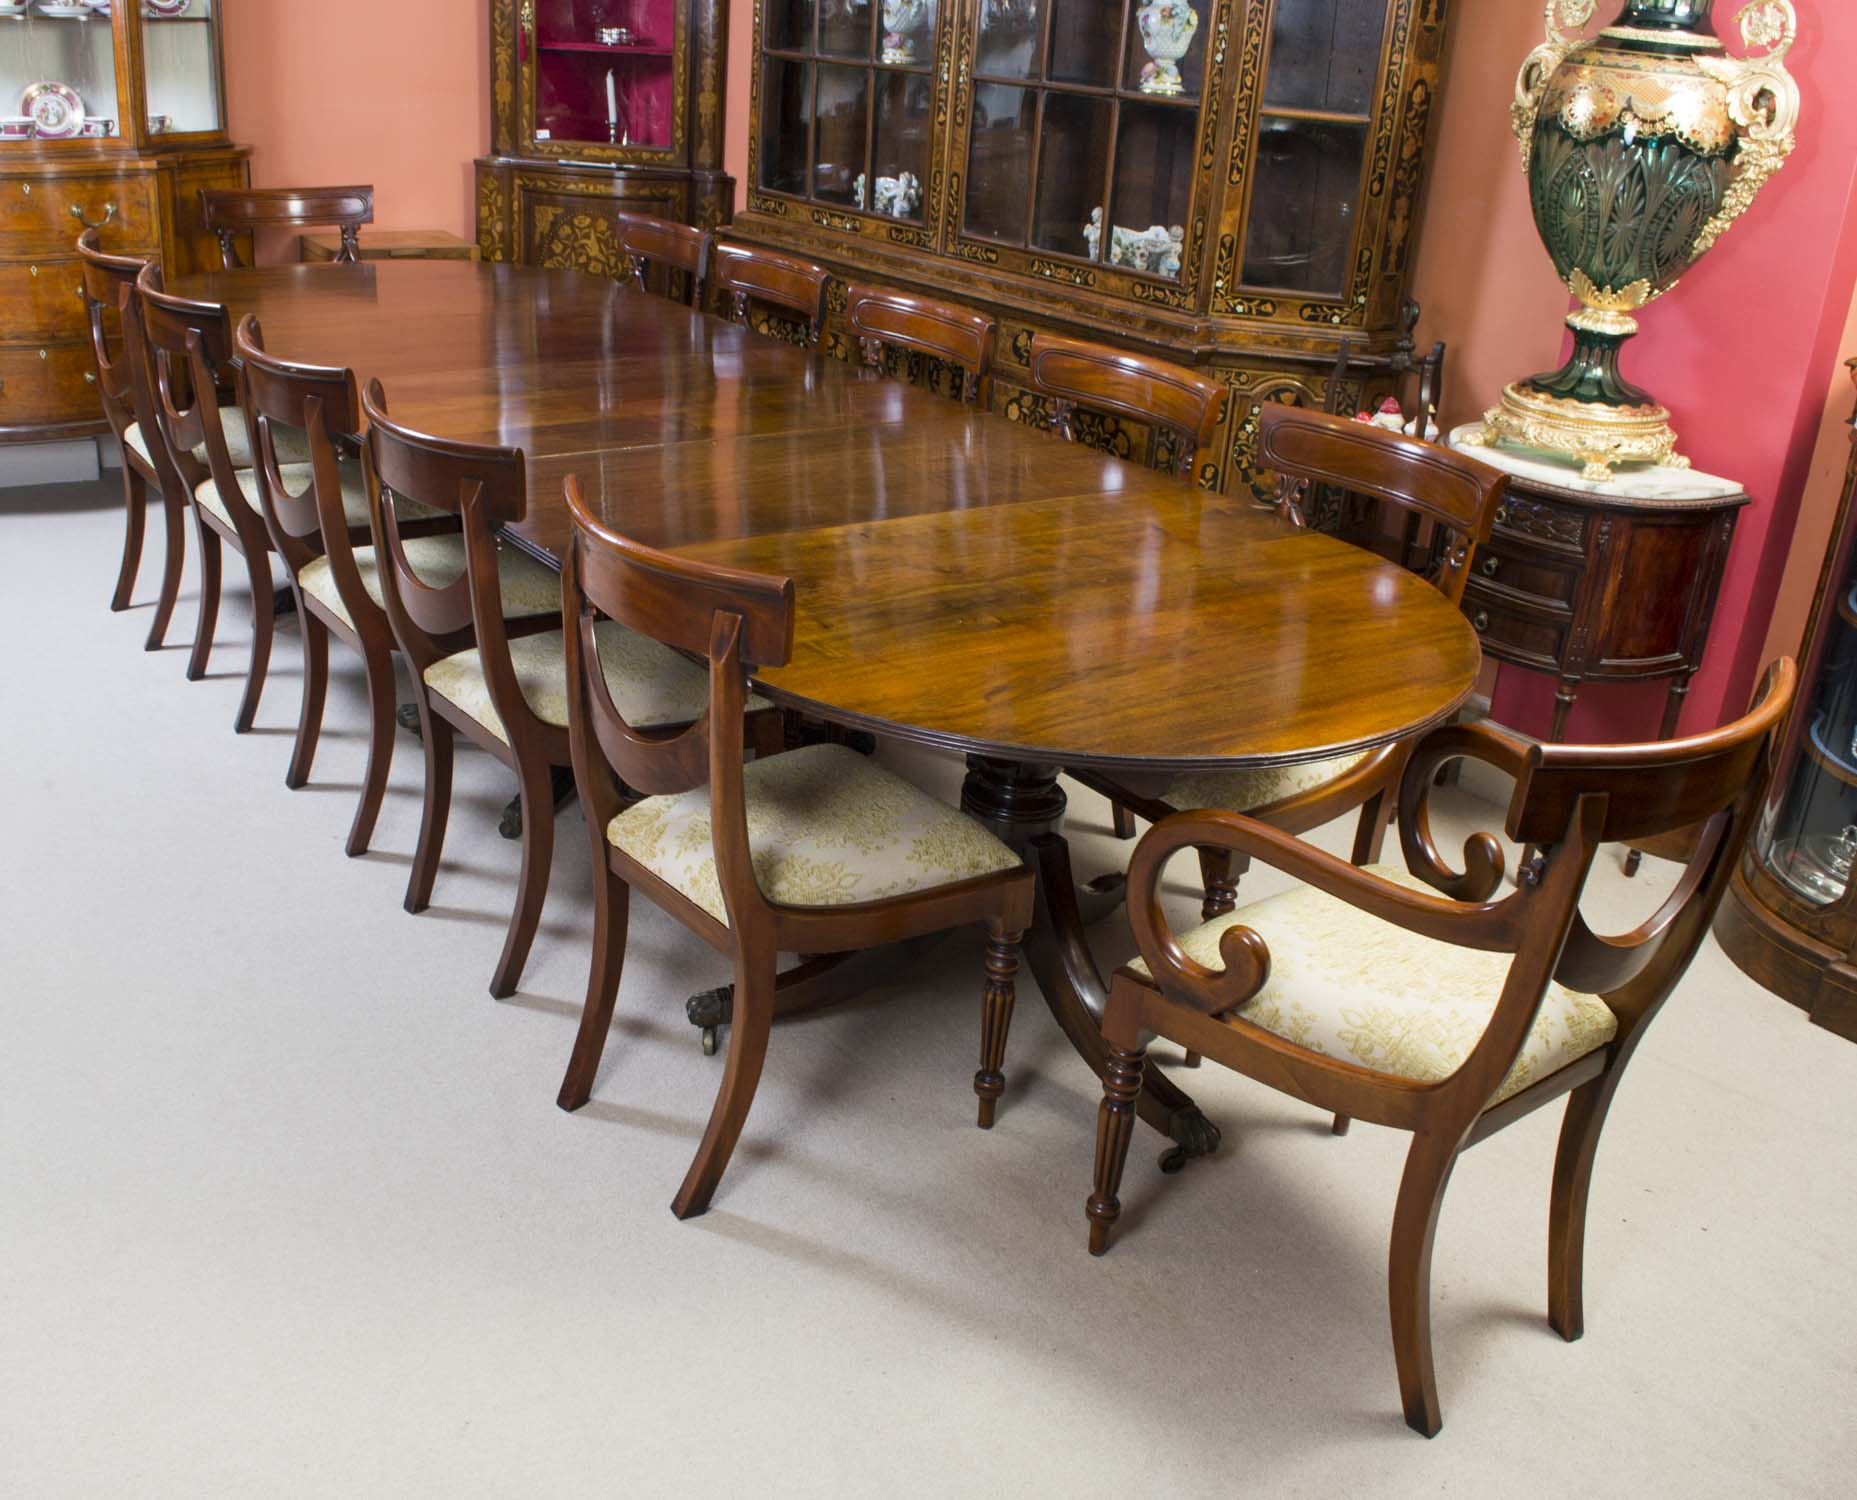 Dining Set 12 Chairs Antique Regency Mahogany Dining Table C1920 And 12 Chairs